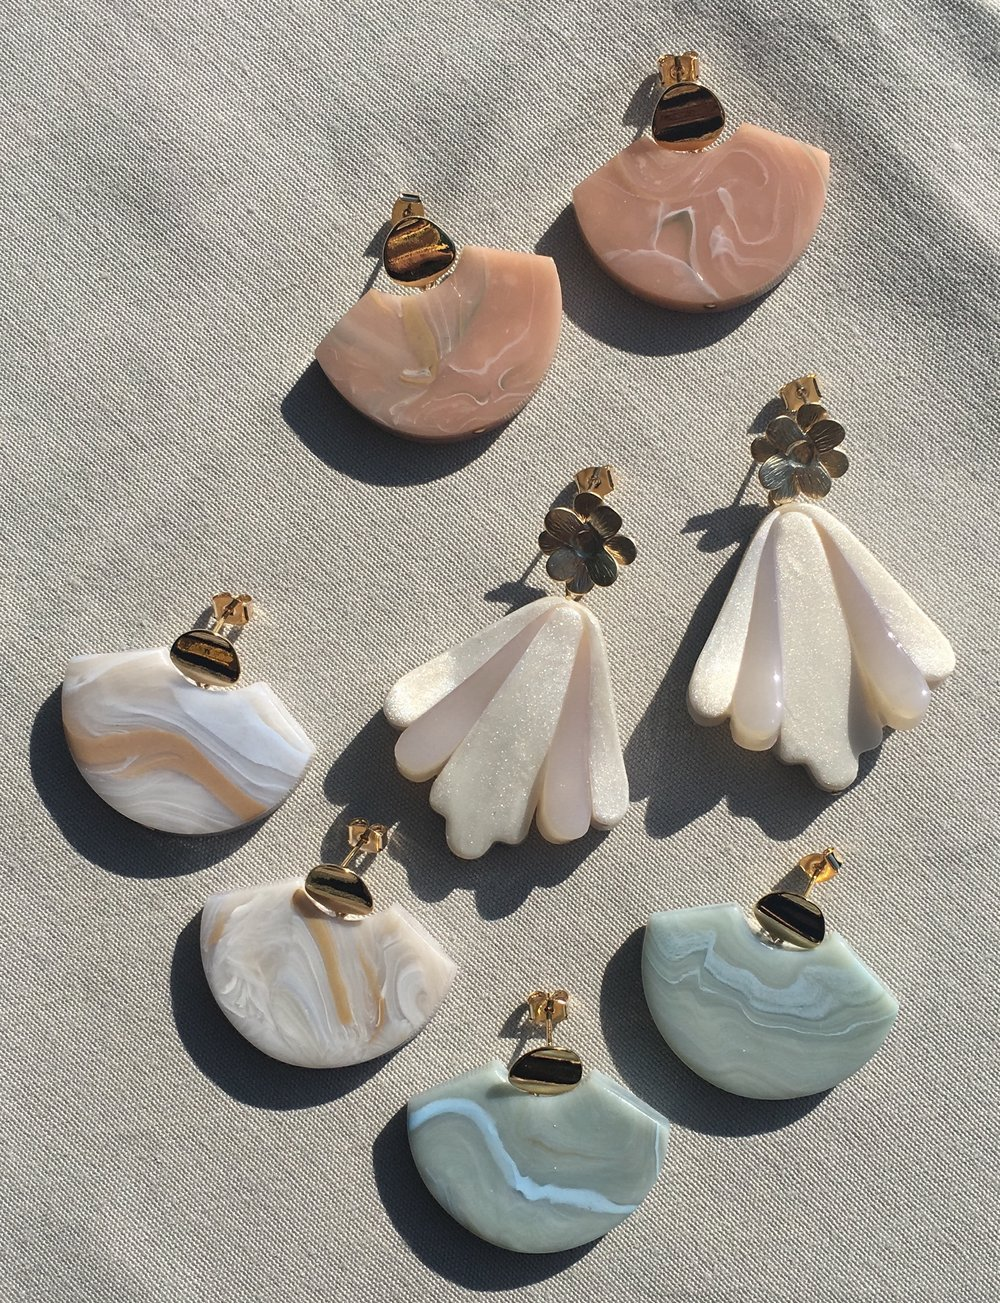 View the featured Jewels - Element and Flower Art Earrings